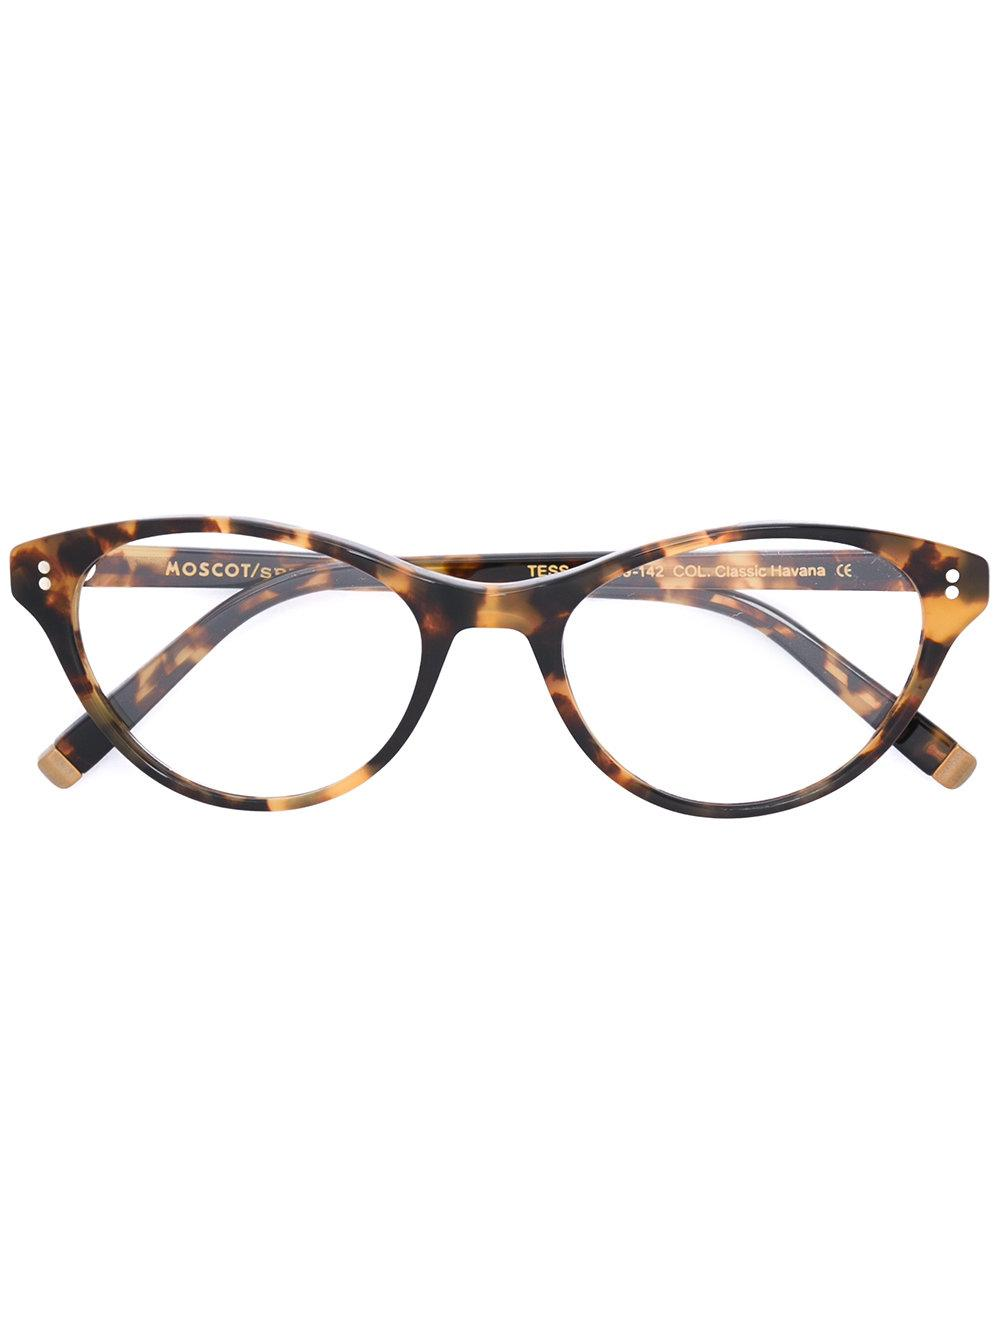 Moscot 'tess' Glasses In Brown